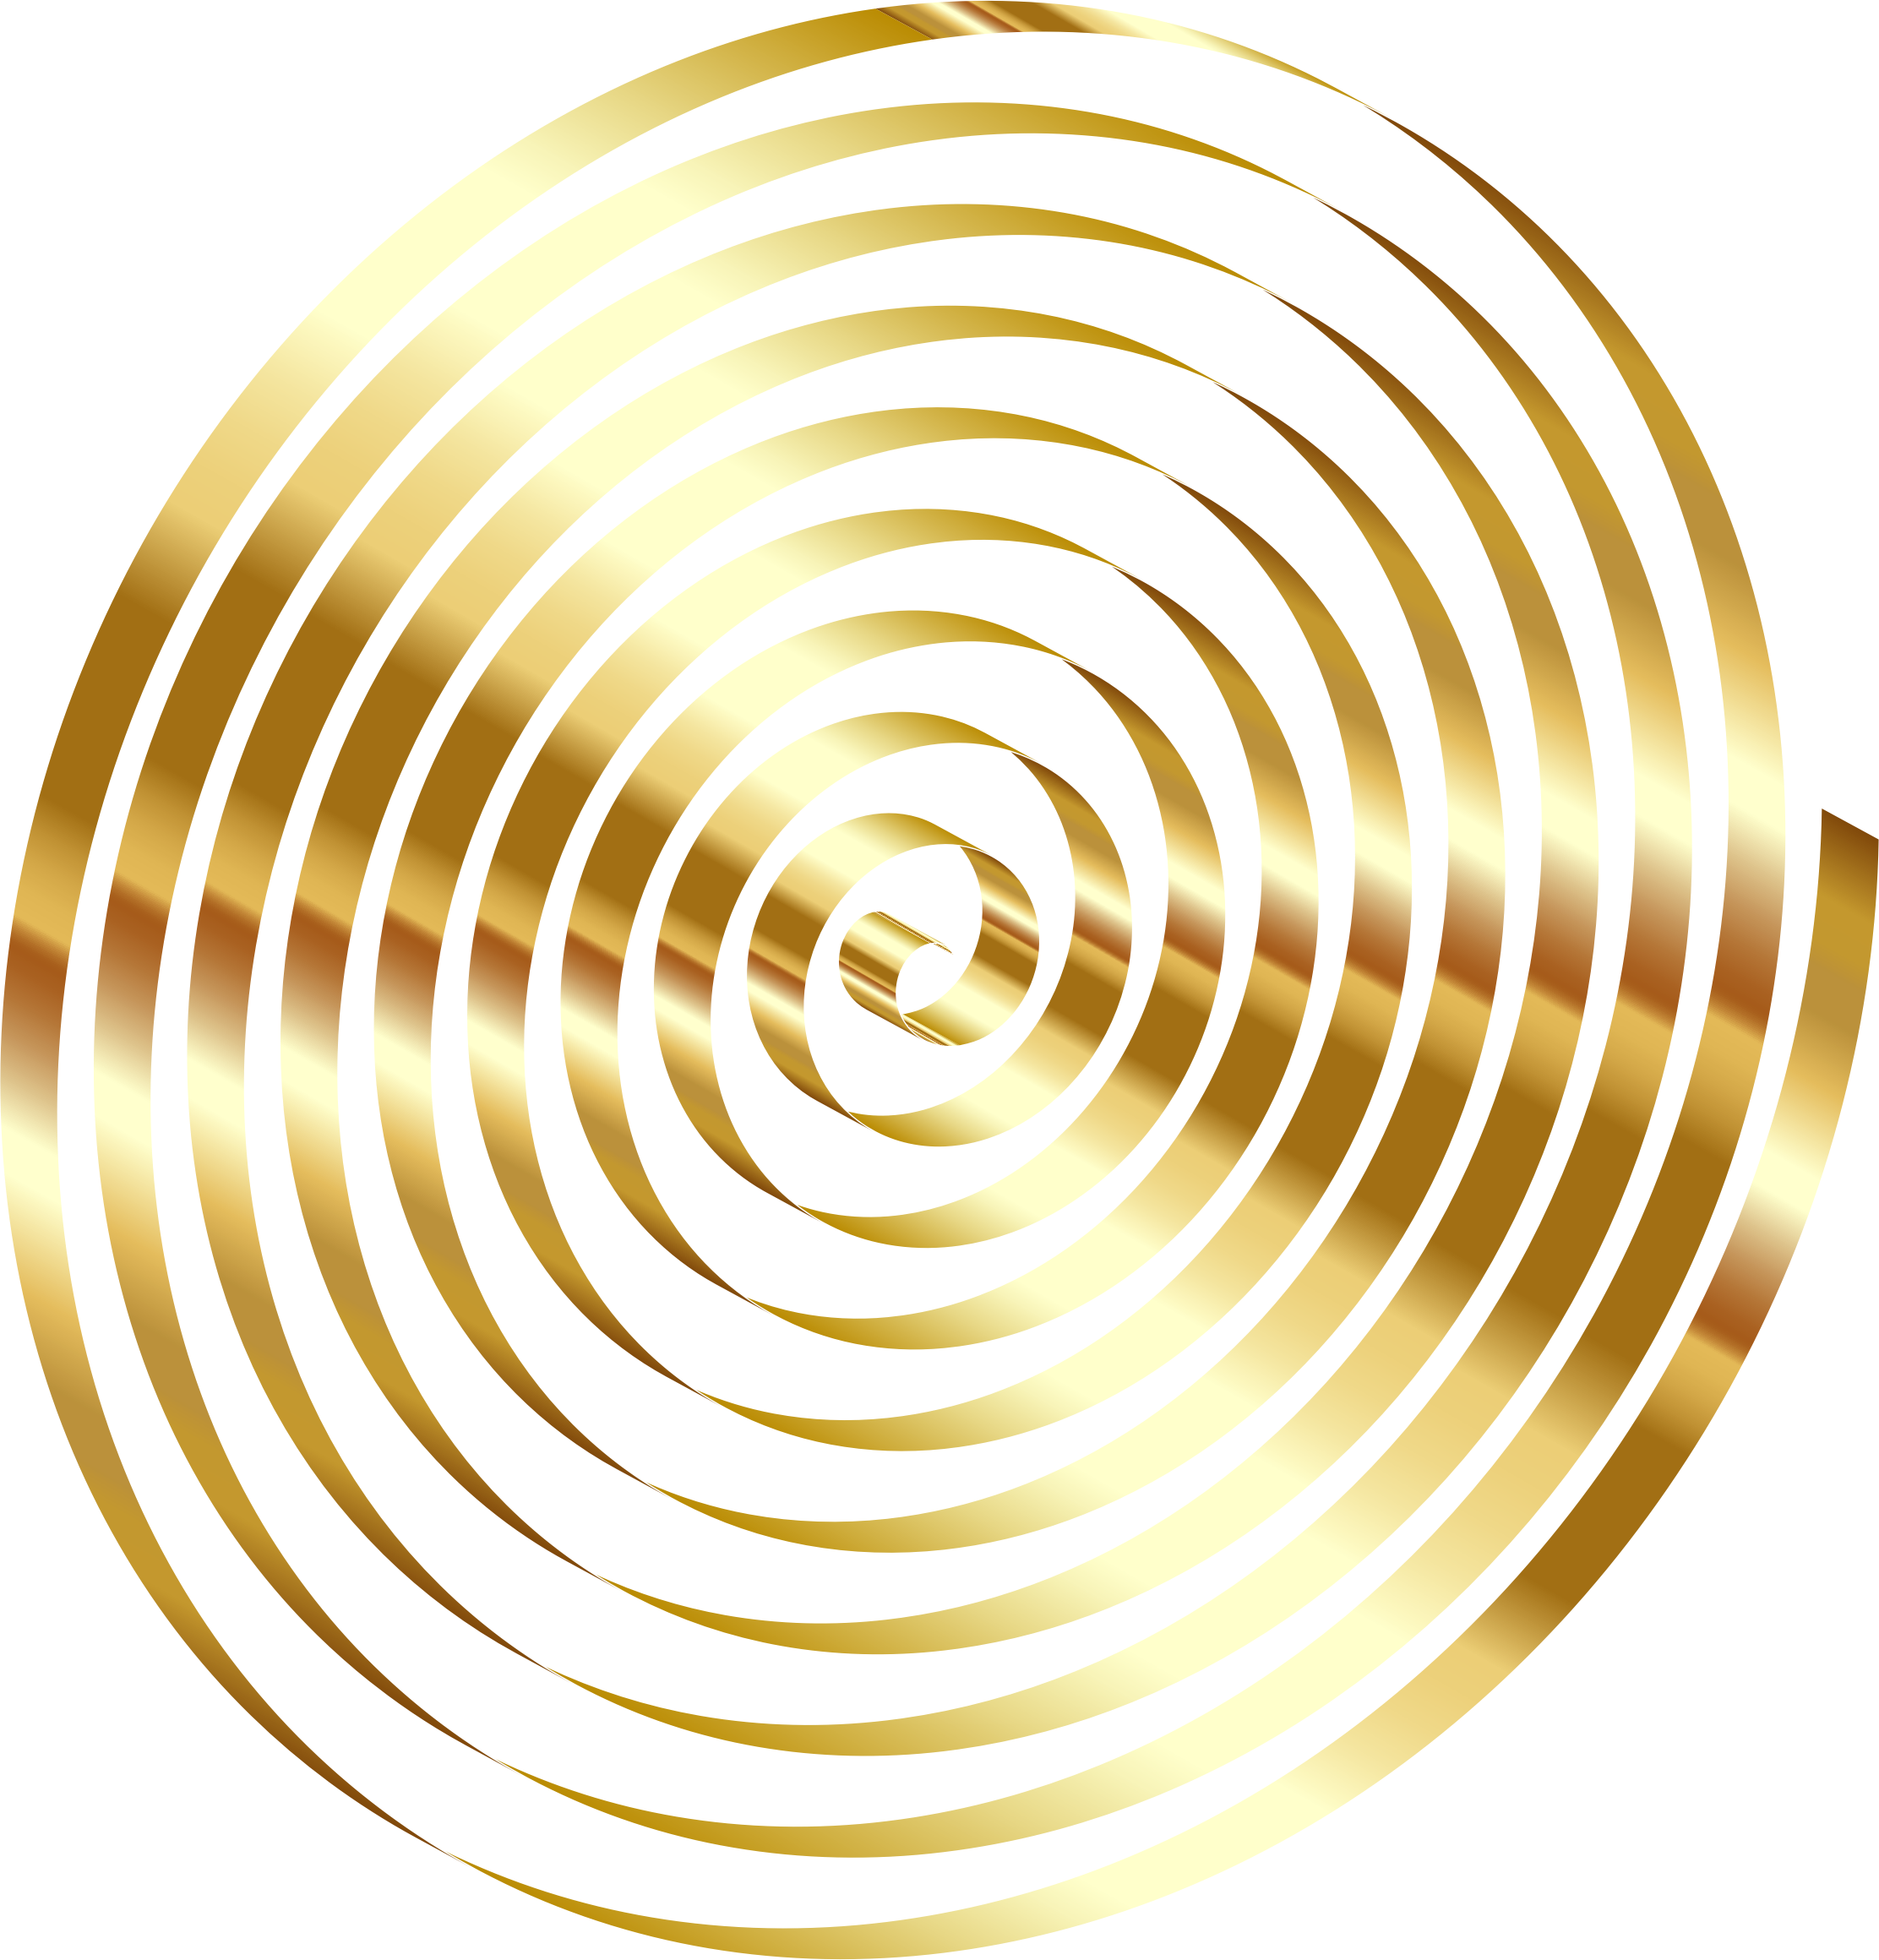 Png image no background. Clipart gold d spiral